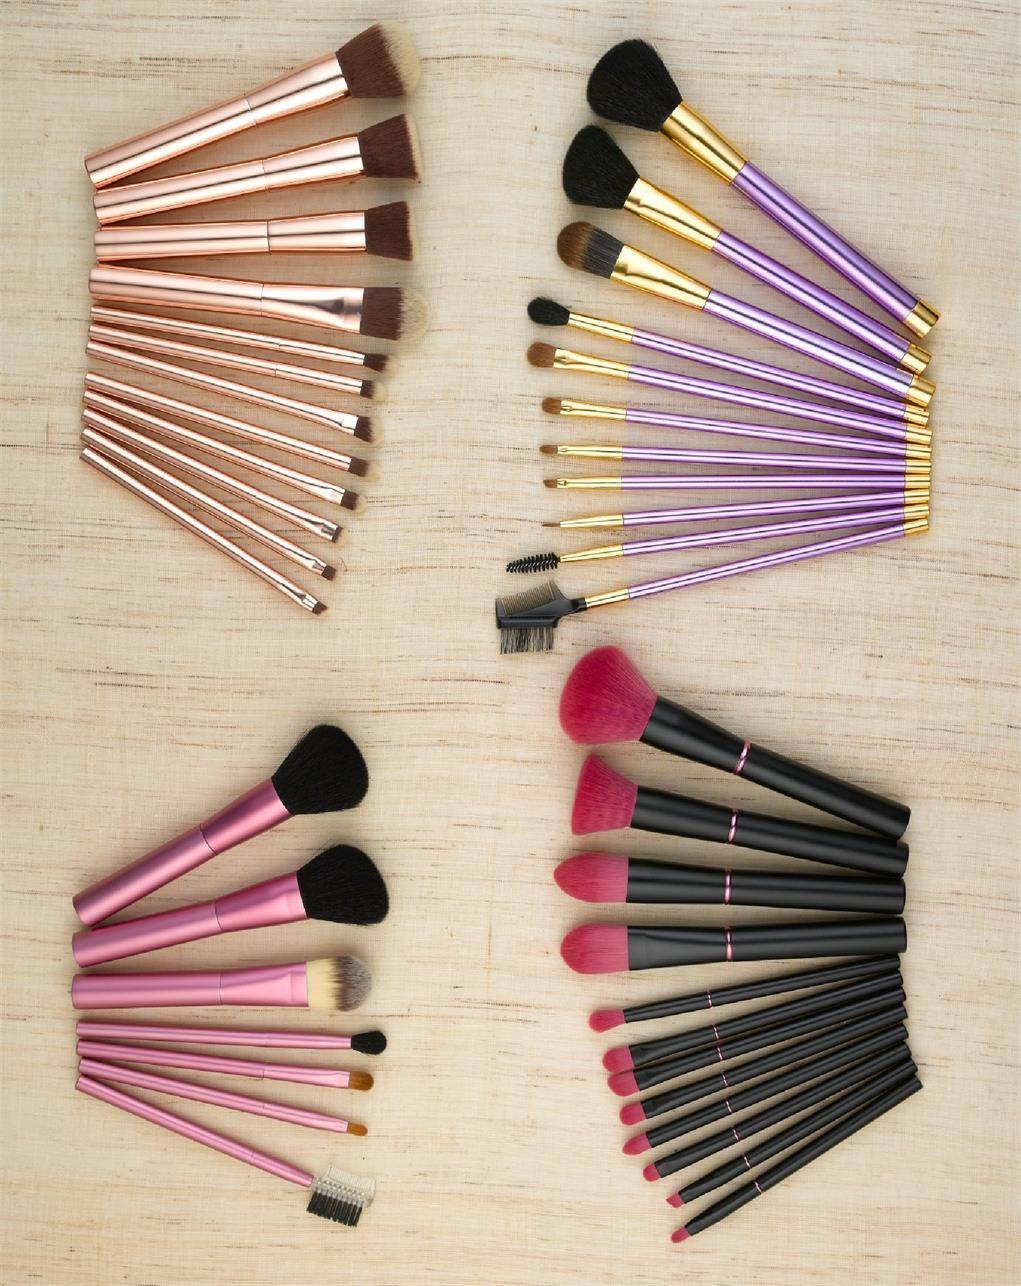 Professional Makeup Brush Set  Makeup Brushes BESTOPE Premium Cosmetic Makeup Brush Set Synthetic ha